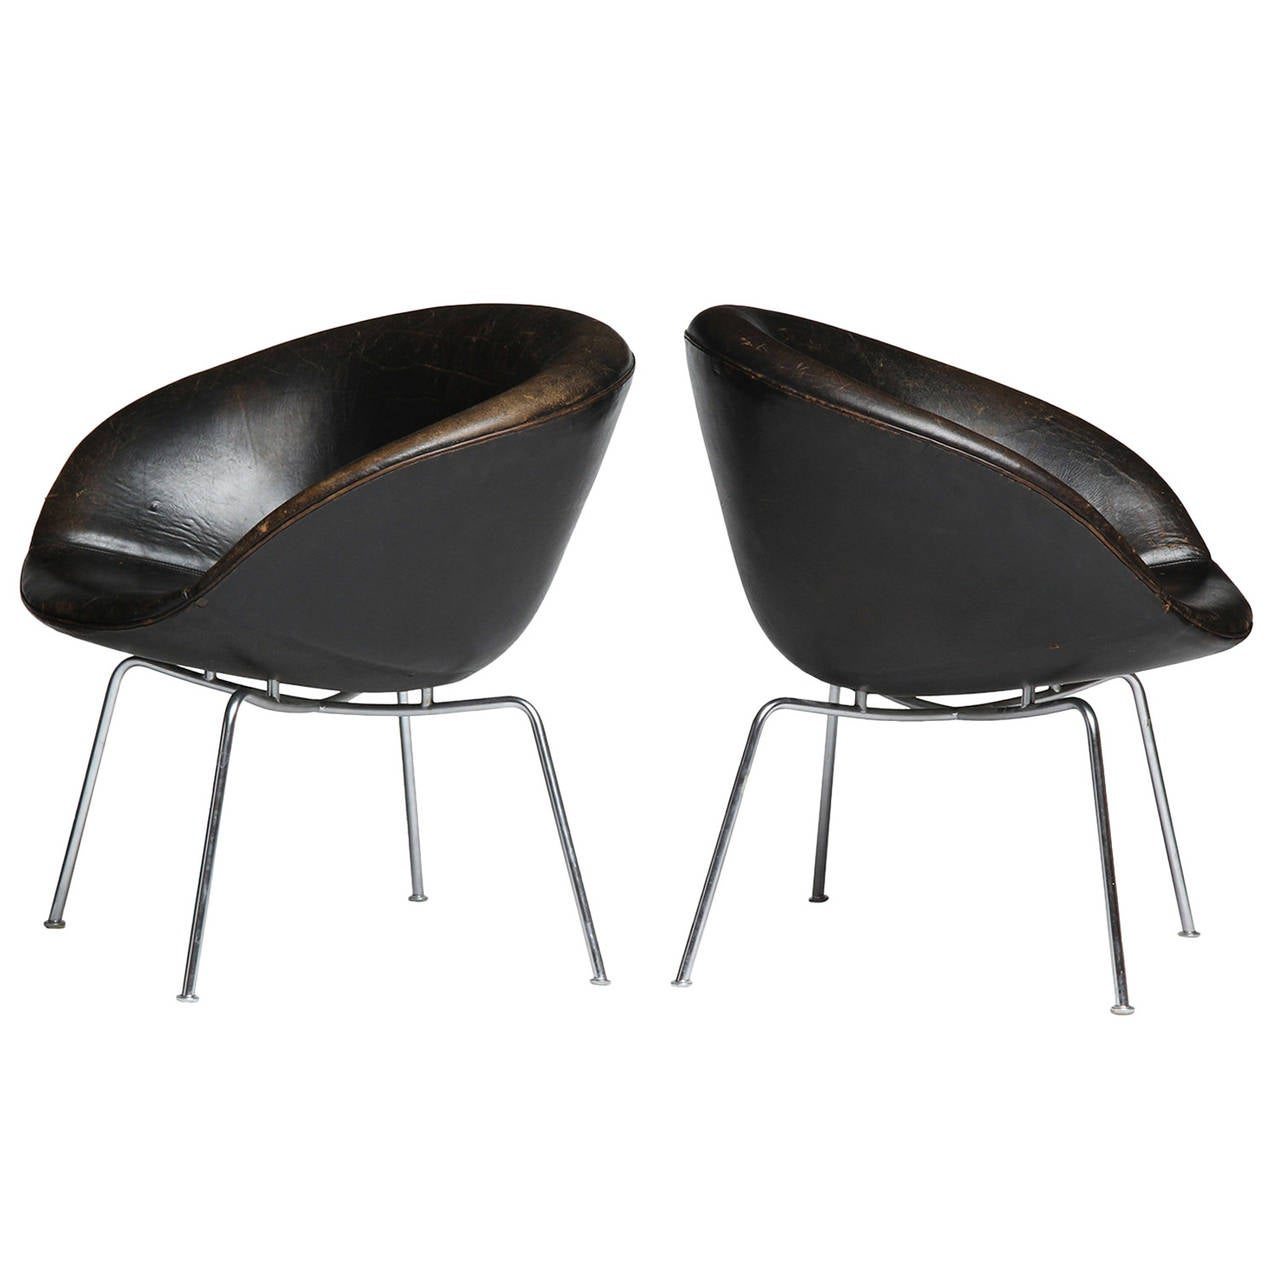 pot chair by arne jacobsen for sale at 1stdibs. Black Bedroom Furniture Sets. Home Design Ideas